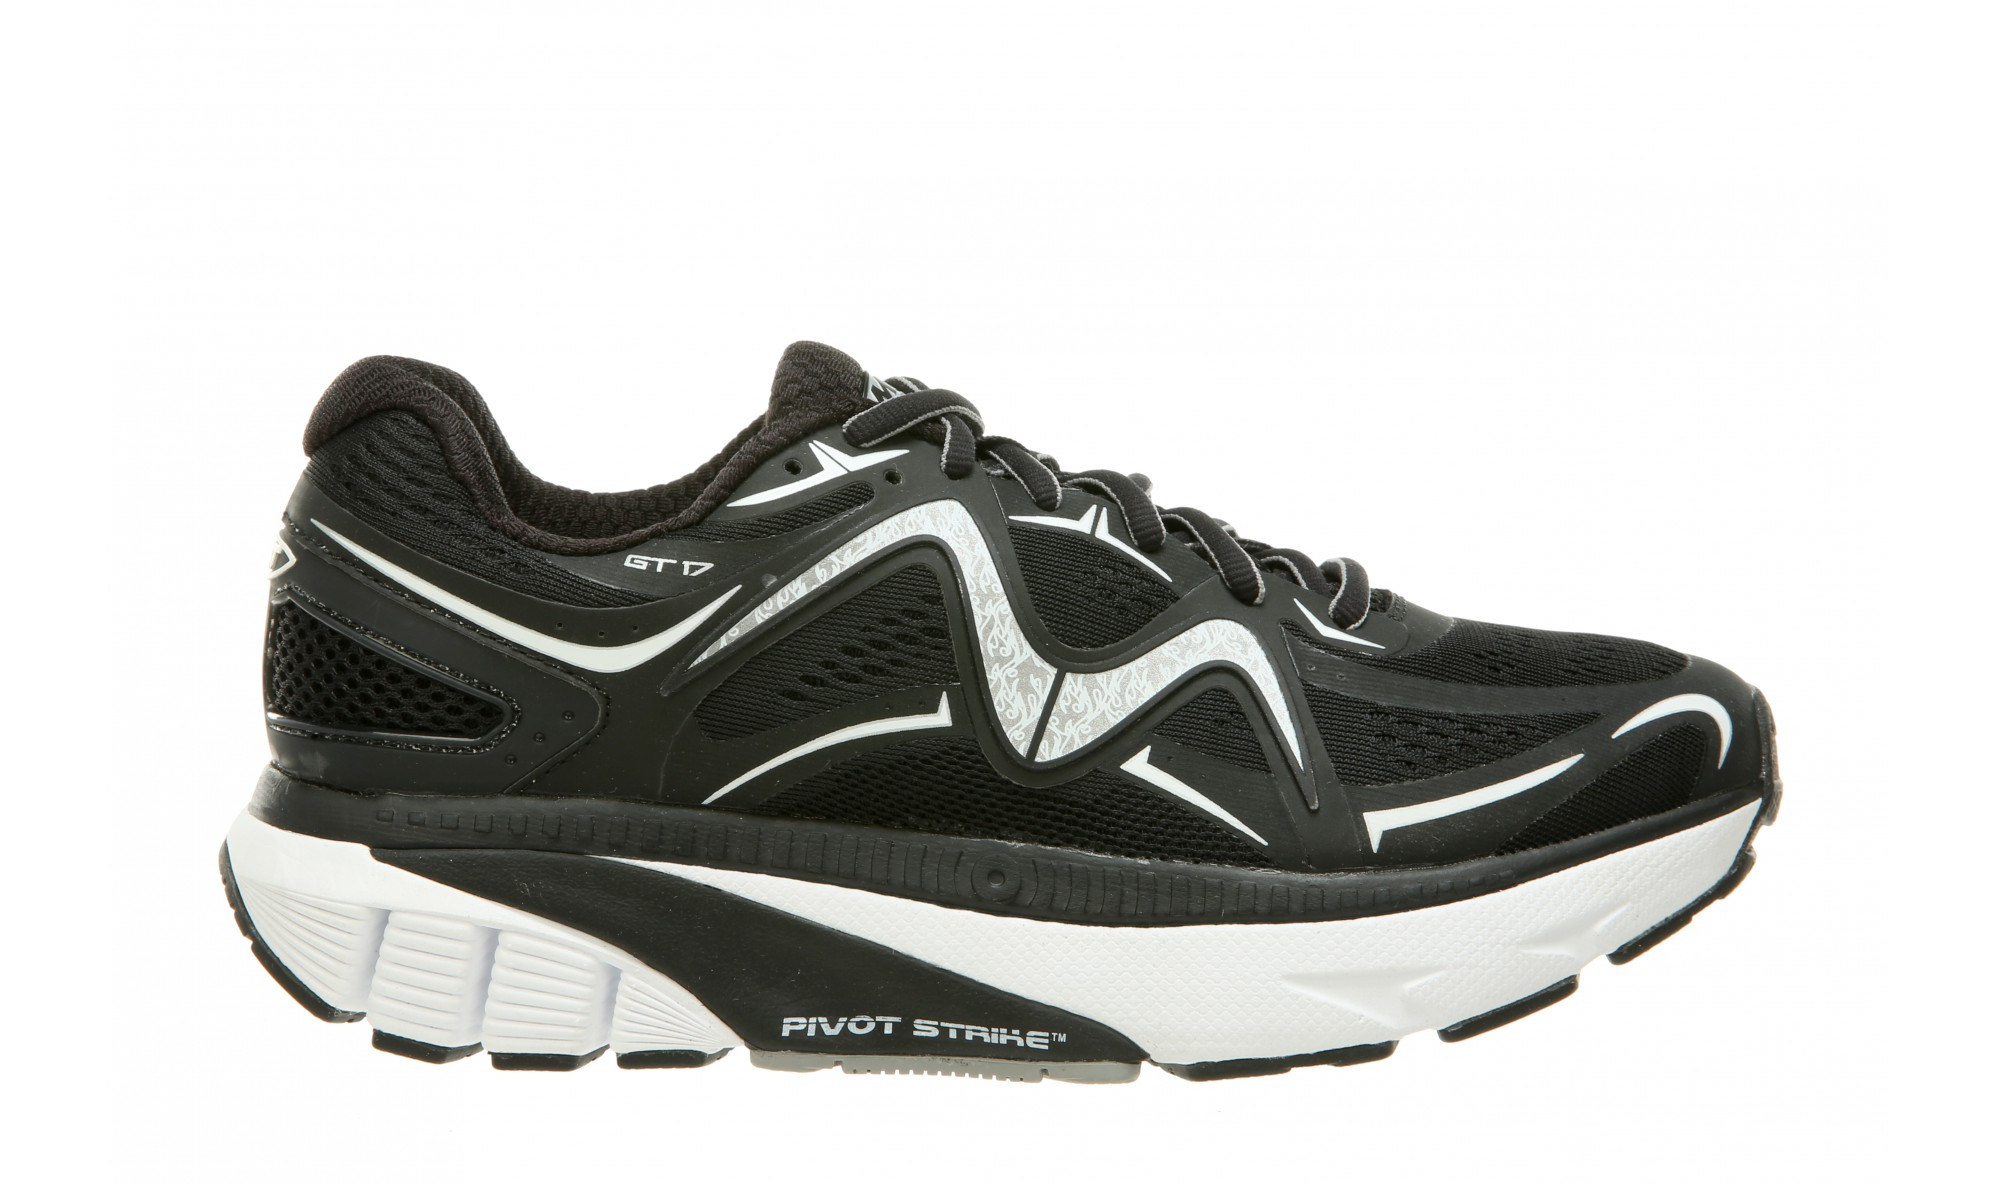 MBT GT 17 - Men's - Black/White